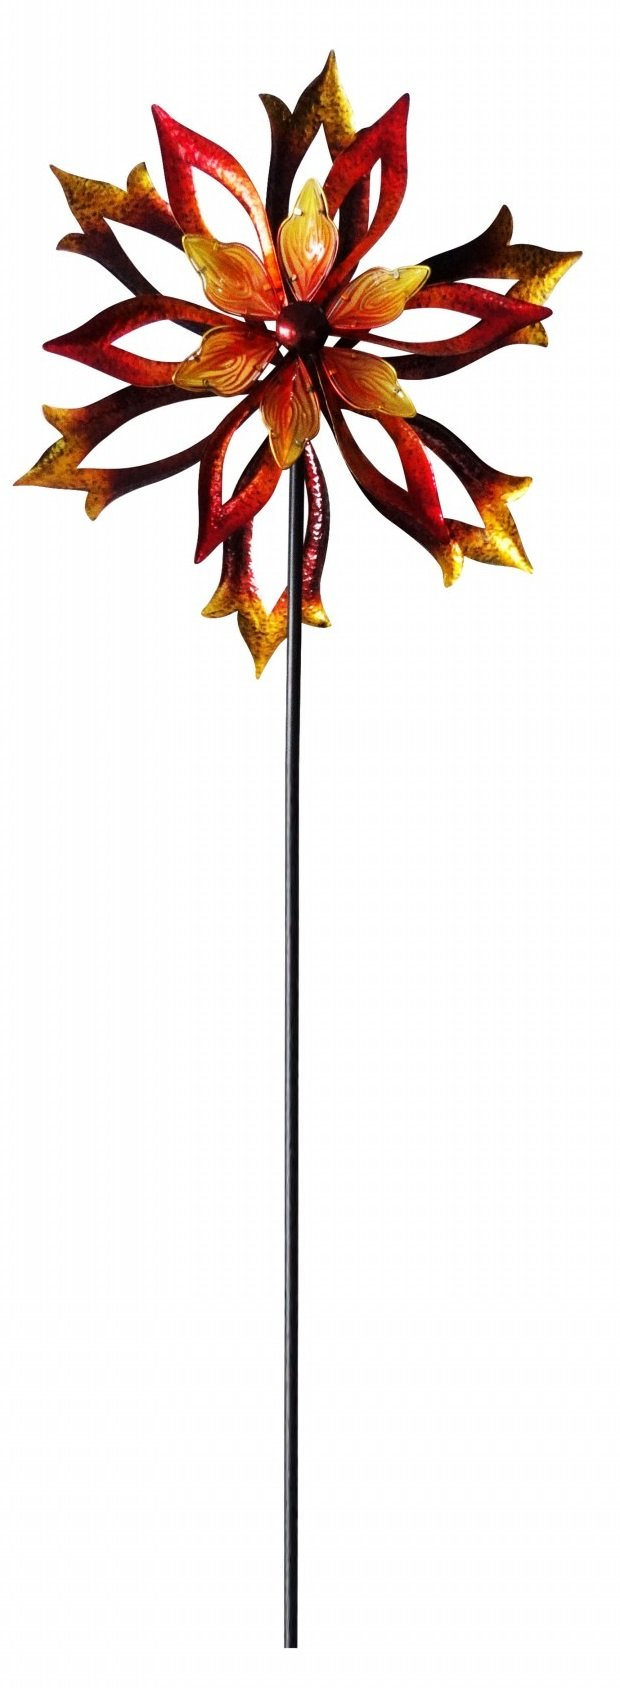 Alpine Corporation KPP426 Metal Double Sided Flame Flower Spinning Garden Stake by Alpine